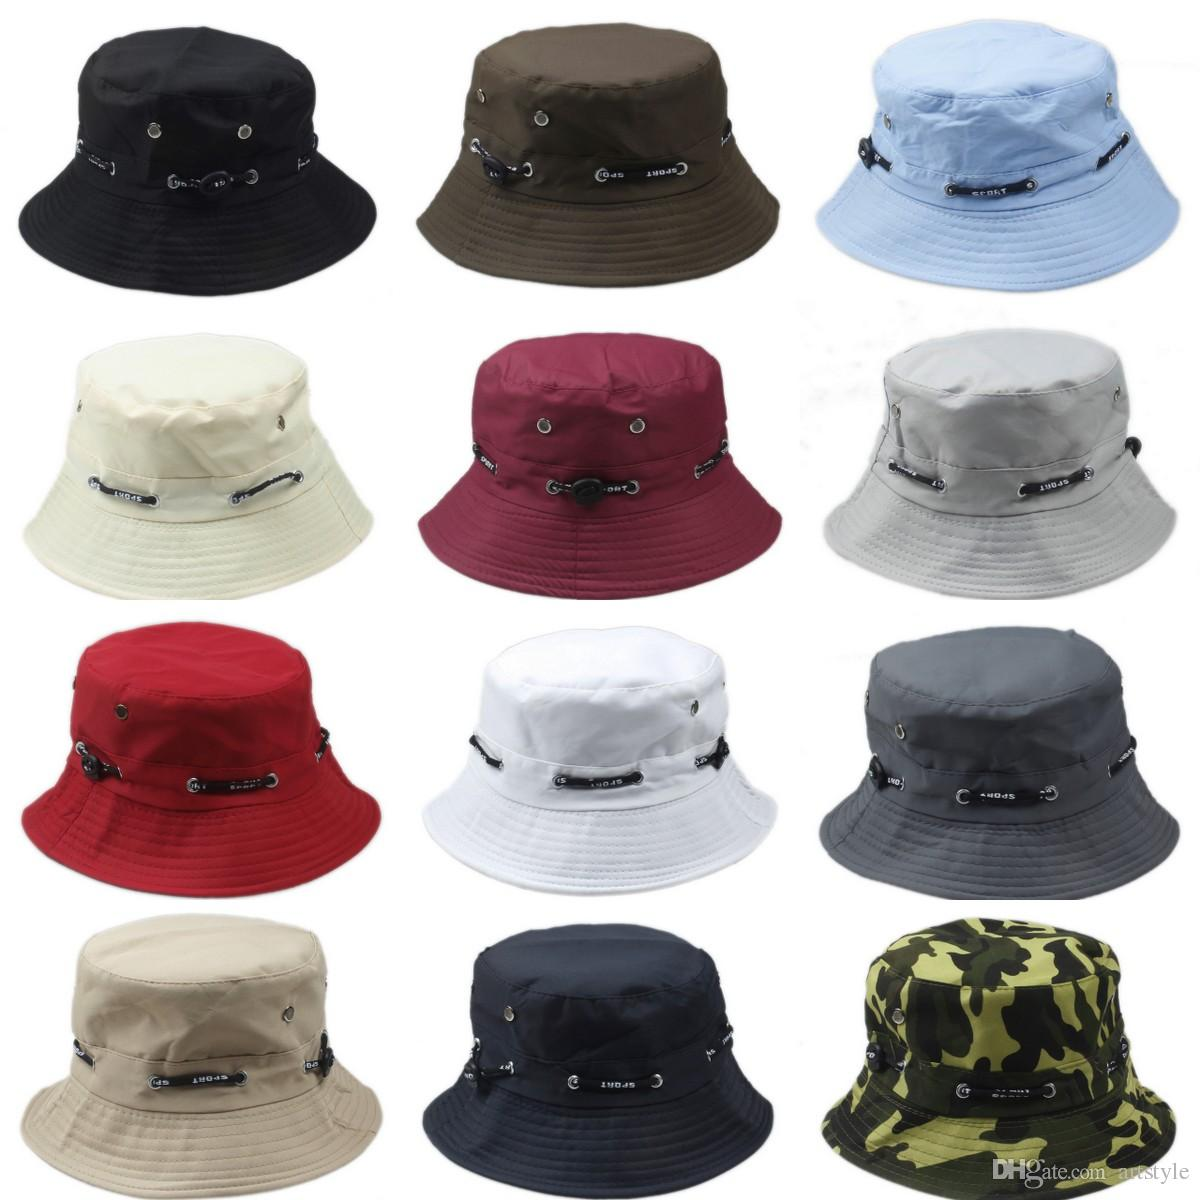 62876a7ca70 2019 New Fashion Men Women Bucket Hat Boonie Flat Hunting Fishing Outdoor  Summer Cap Unisex 100% Cotton From Artstyle